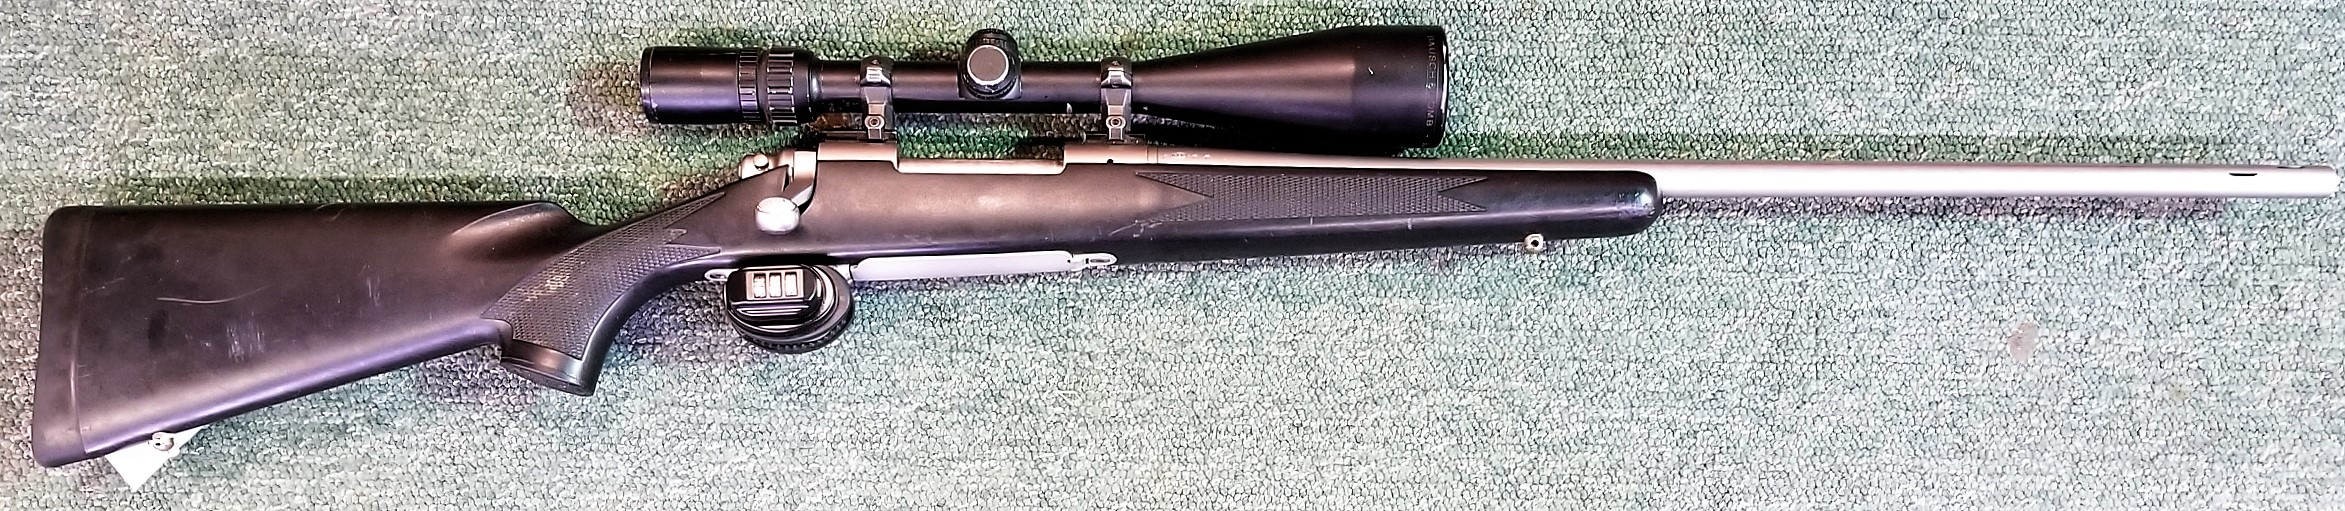 Remington 700 SS .300 win. mag. (USED) with scope